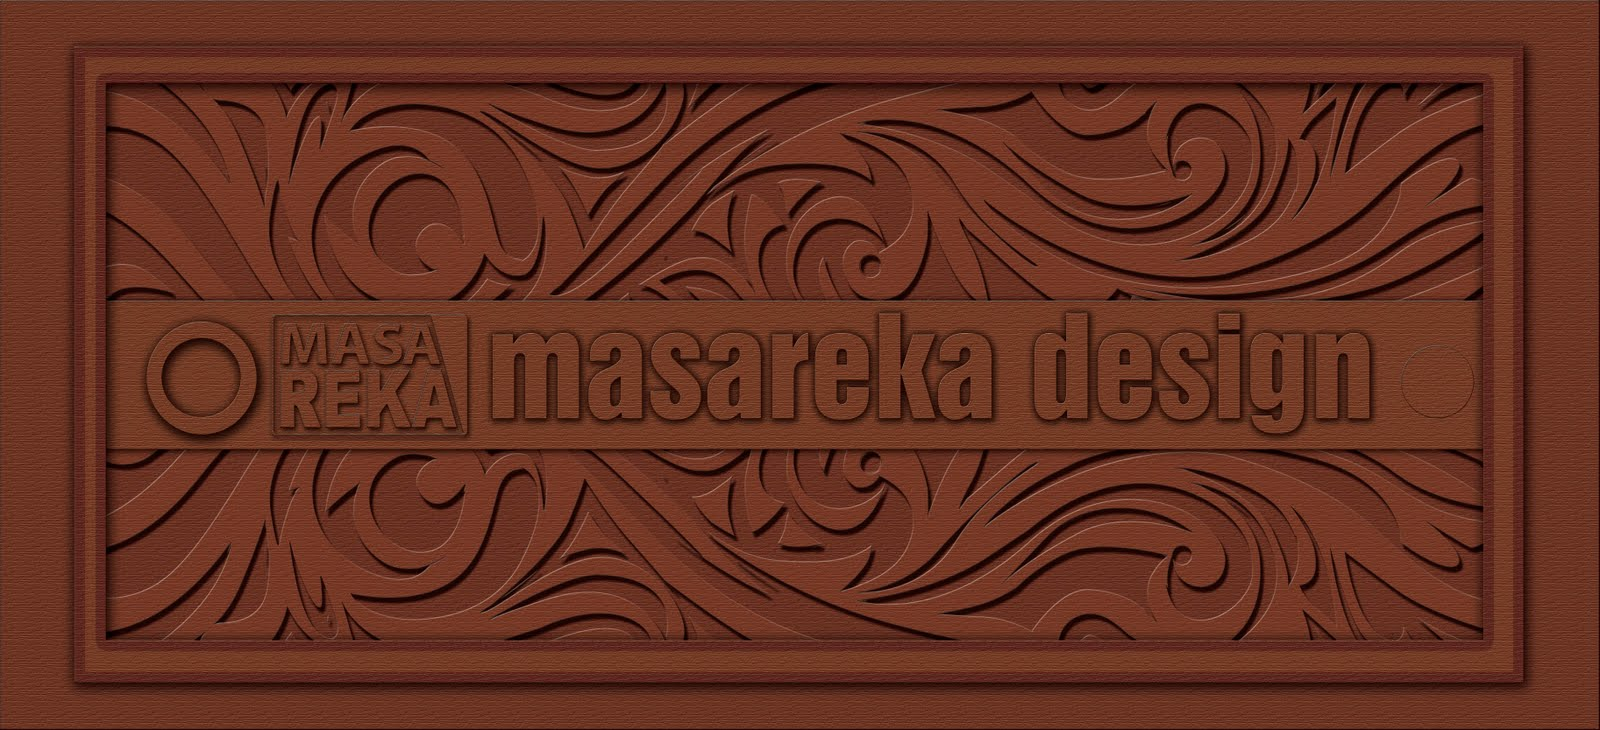 MASAREKA GRAPHIC ADVERTISING